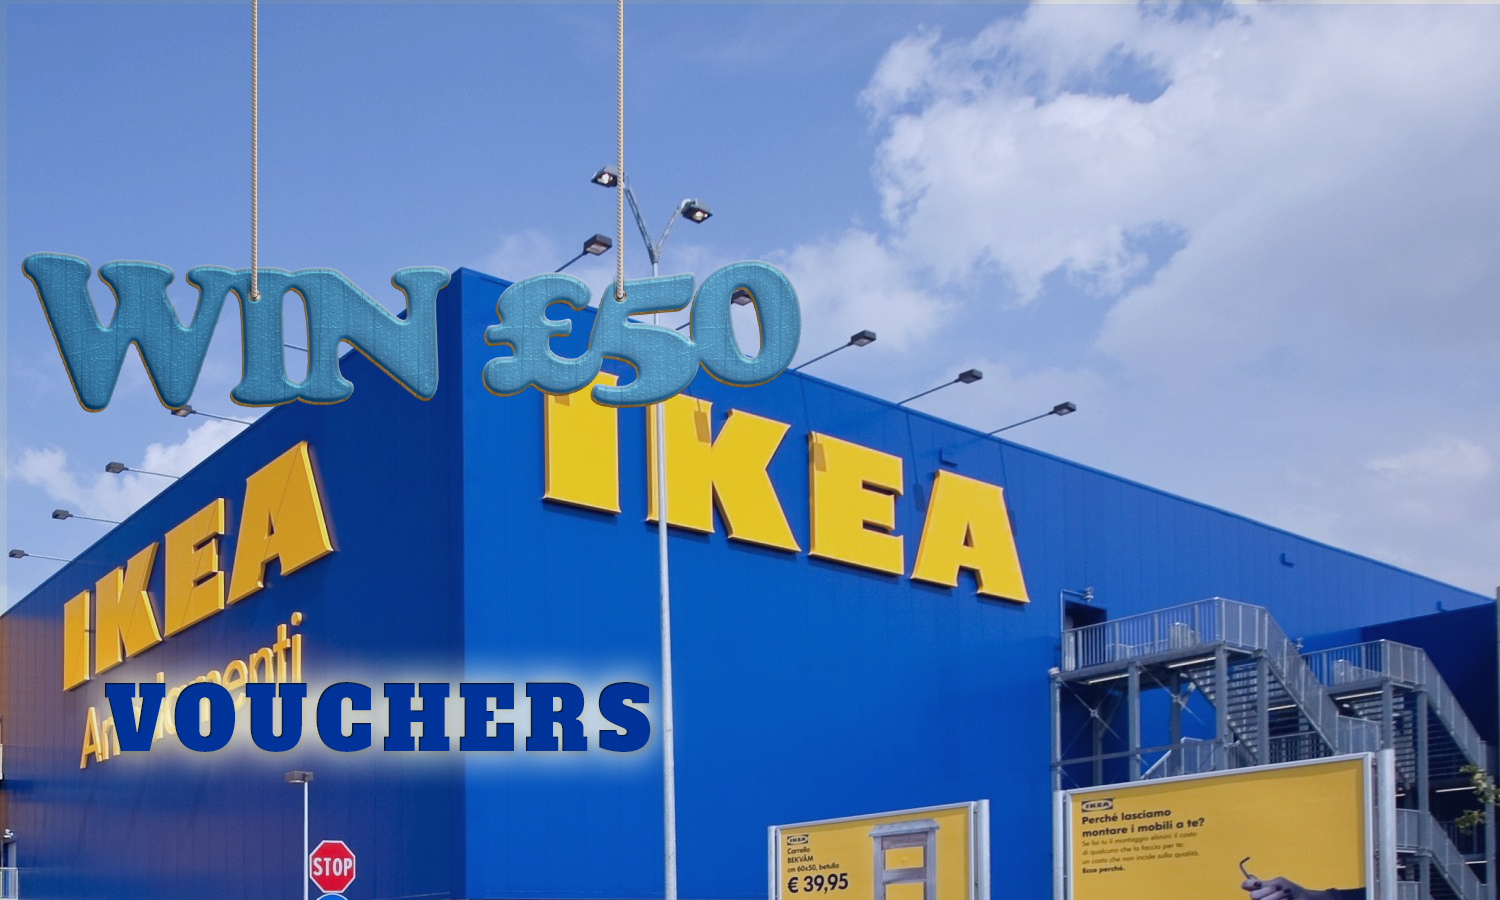 Furniture stores that accept vouchers brw vr2 tidy books for Buy ikea voucher online